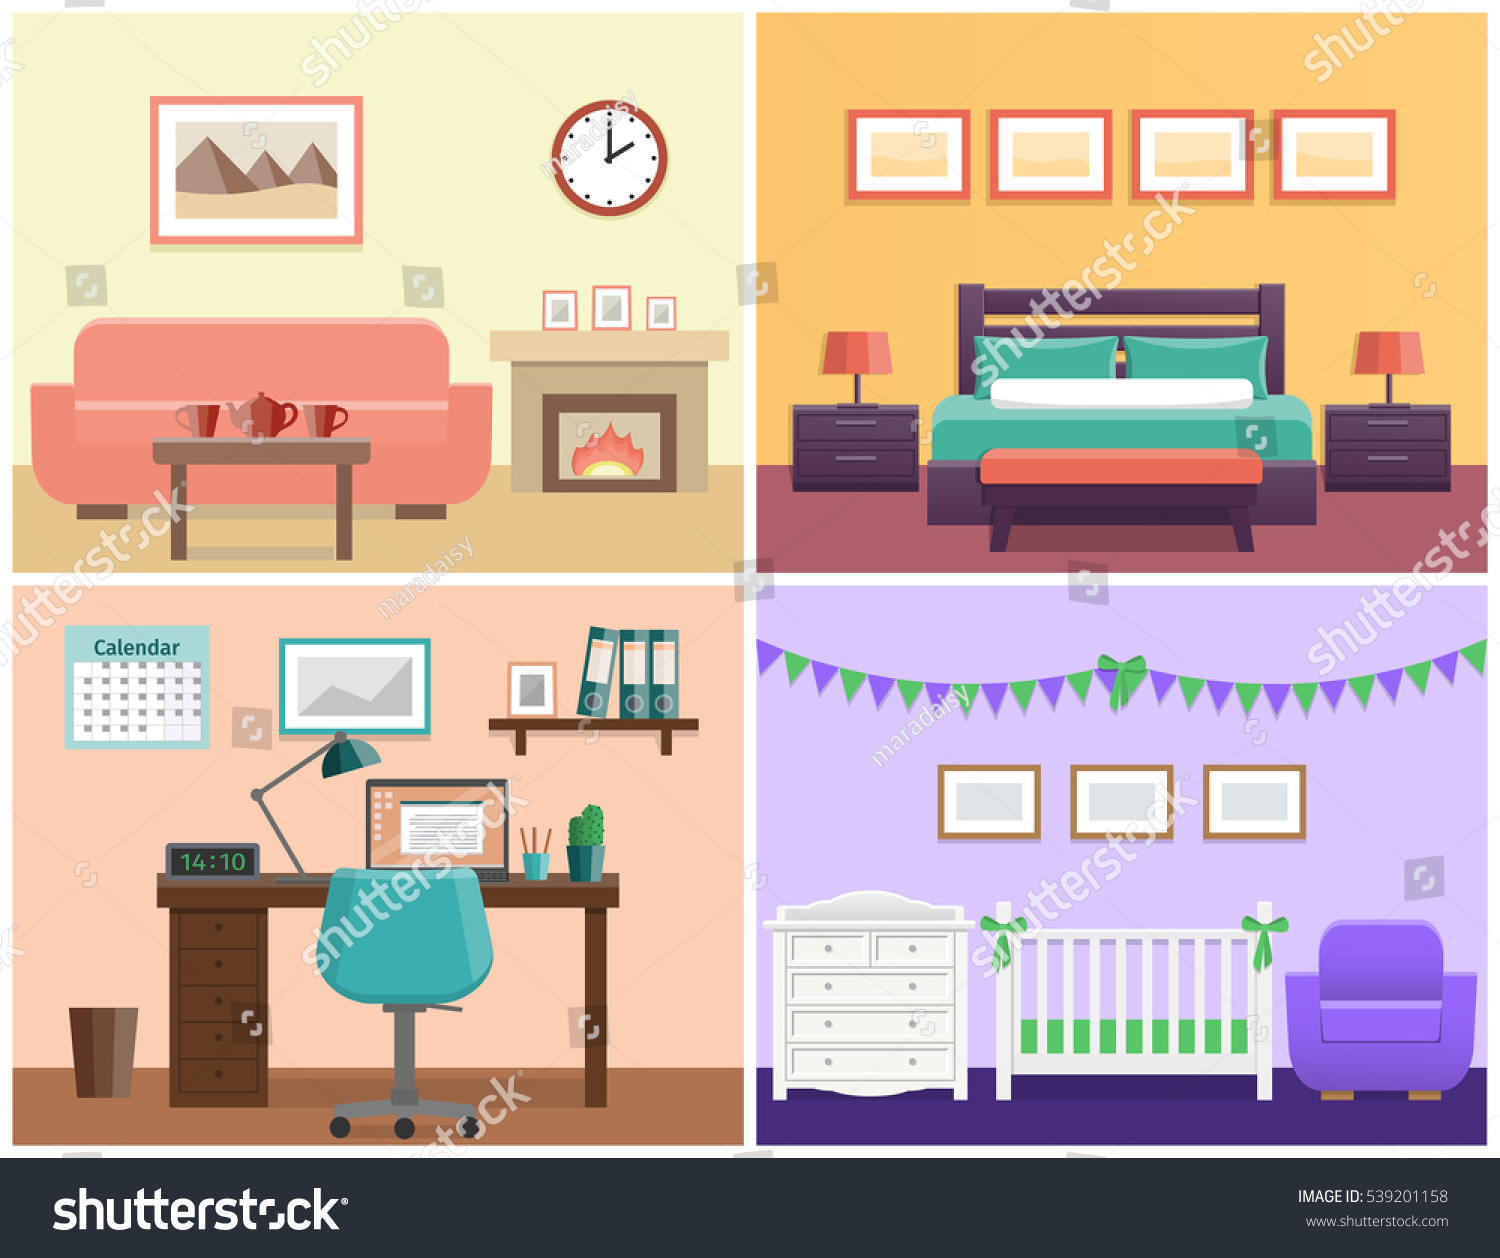 Interior Of Modern Living Room In Flat Design Stock Vector: House Interior Living Room Bedroom Office Stock Vector